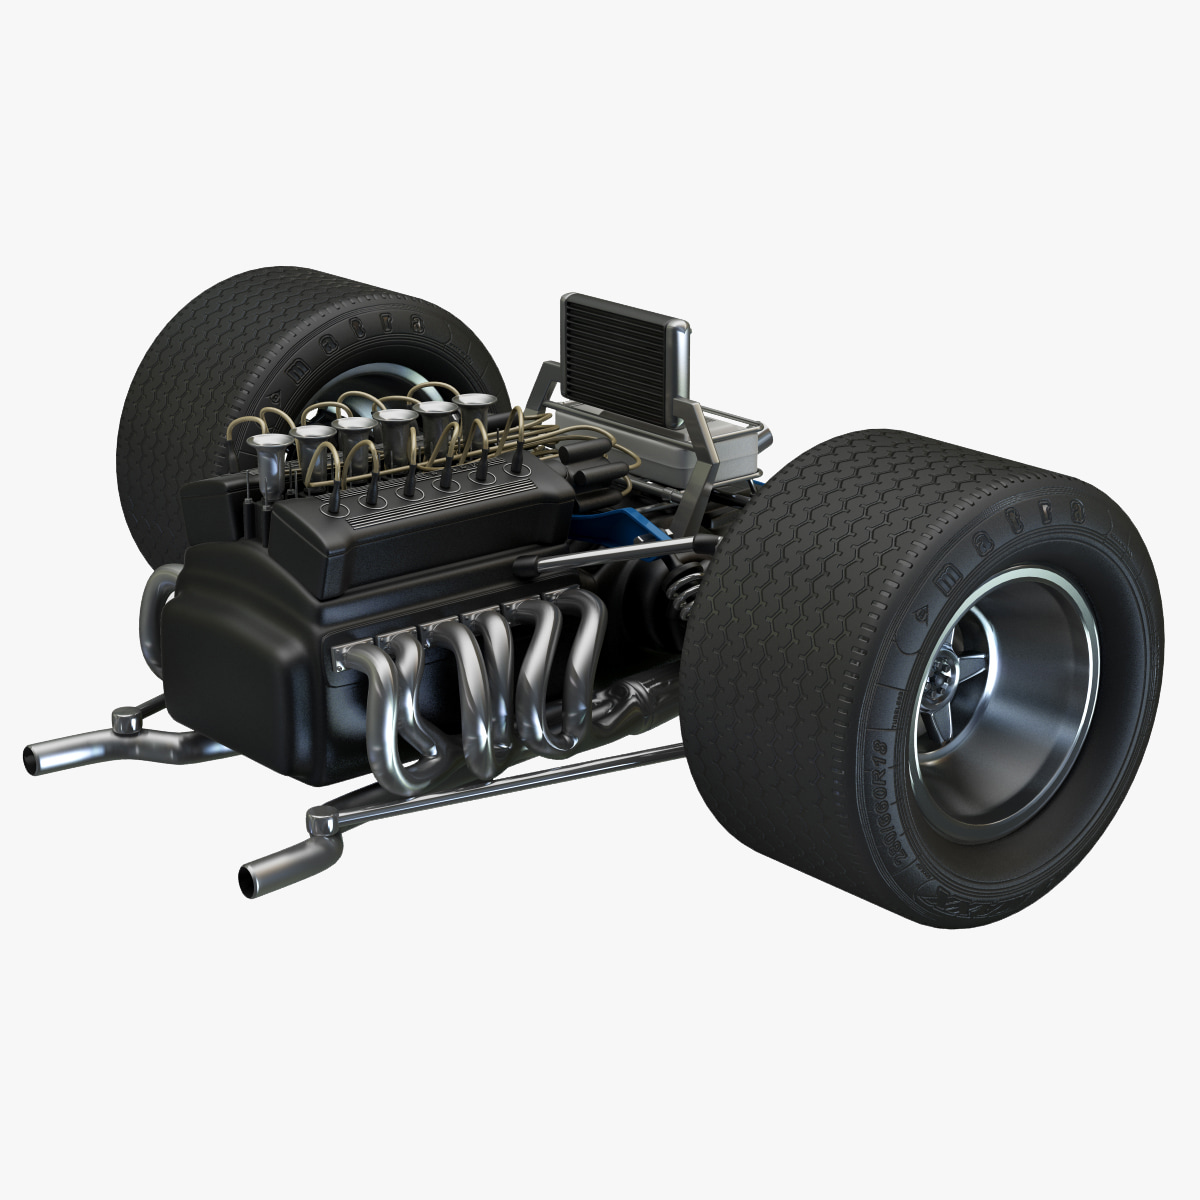 Racing_Car_Back_Suspension_And_Engine_000.jpg